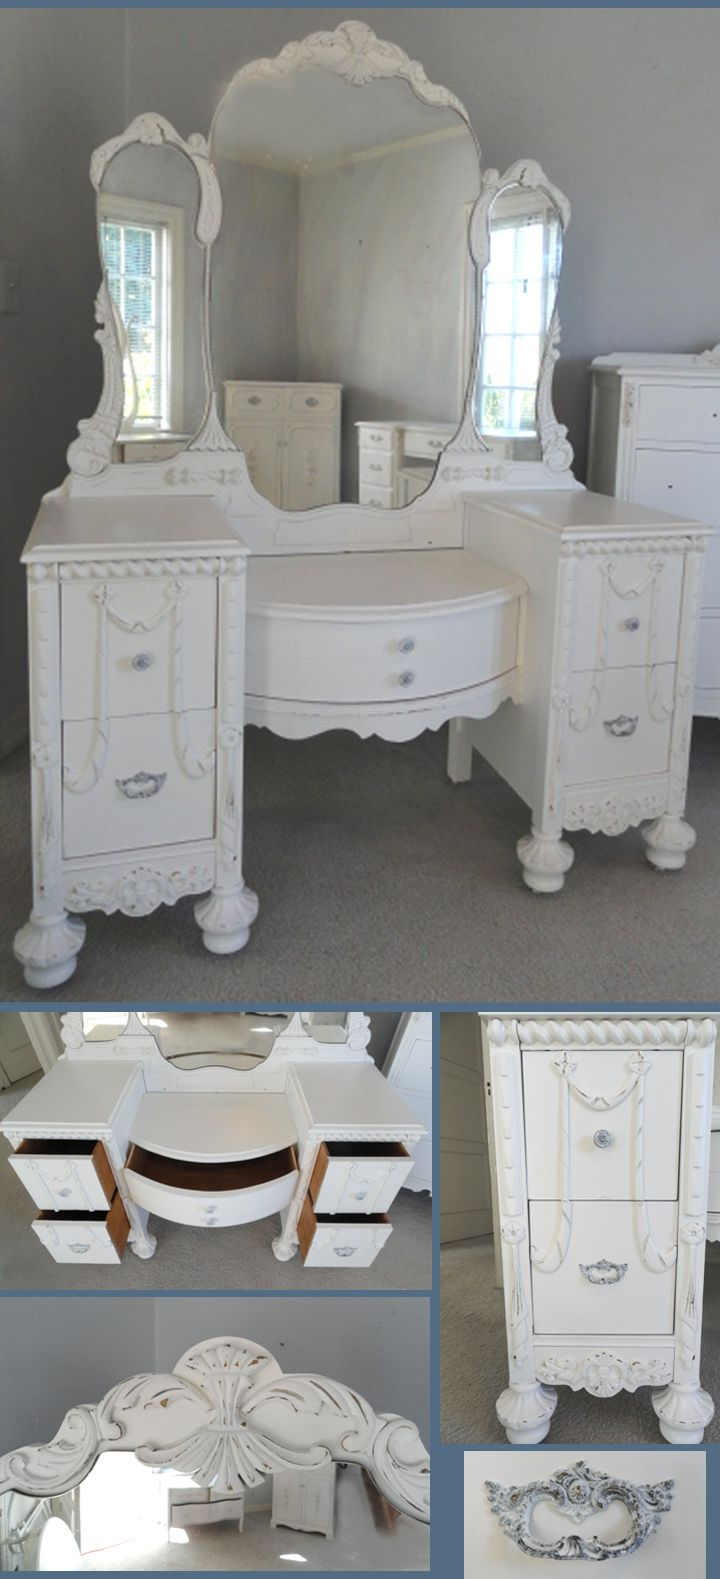 Antique makeup vanity table - I Wish I Could Find One Of These Antique Vanities For Brooklyn S Room Preferably With